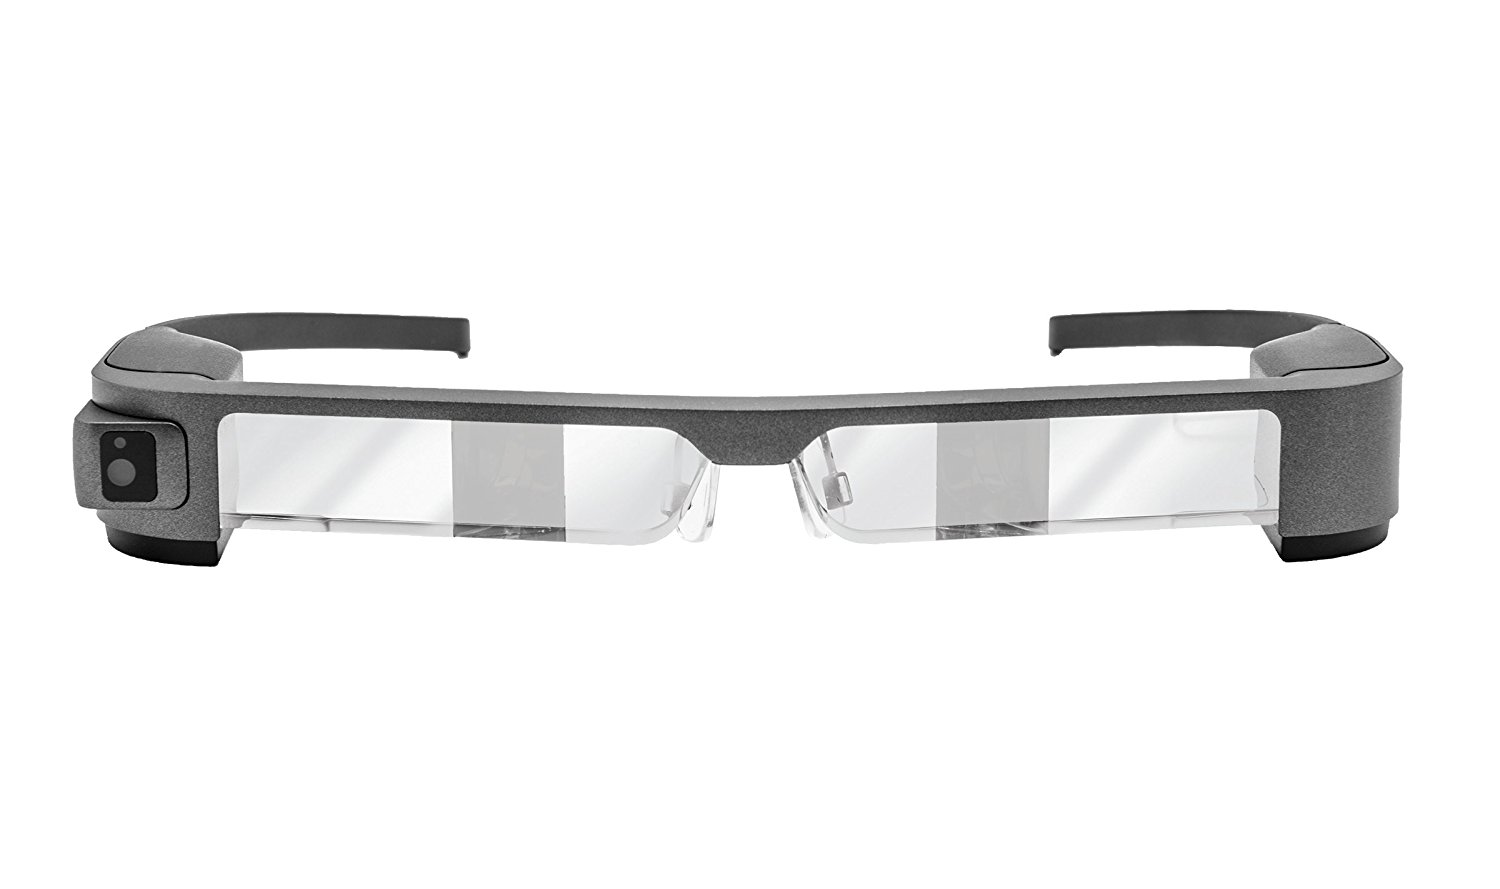 Epson Moverio BT-300FPV Smart Glasses For DJI Front